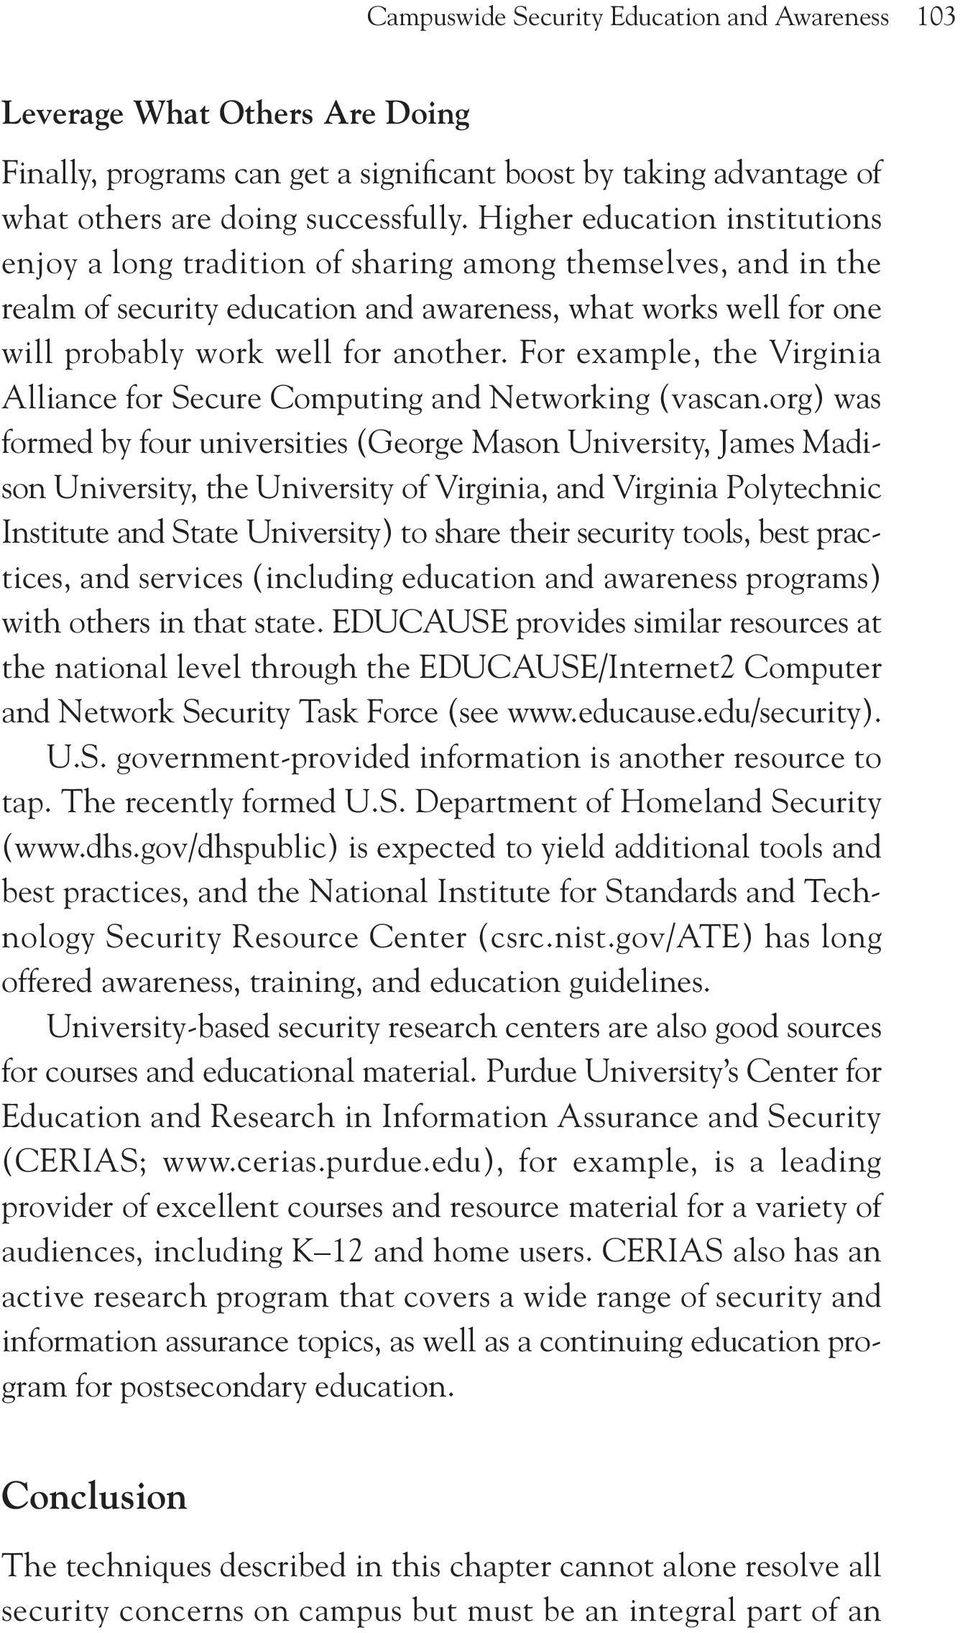 For example, the Virginia Alliance for Secure Computing and Networking (vascan.